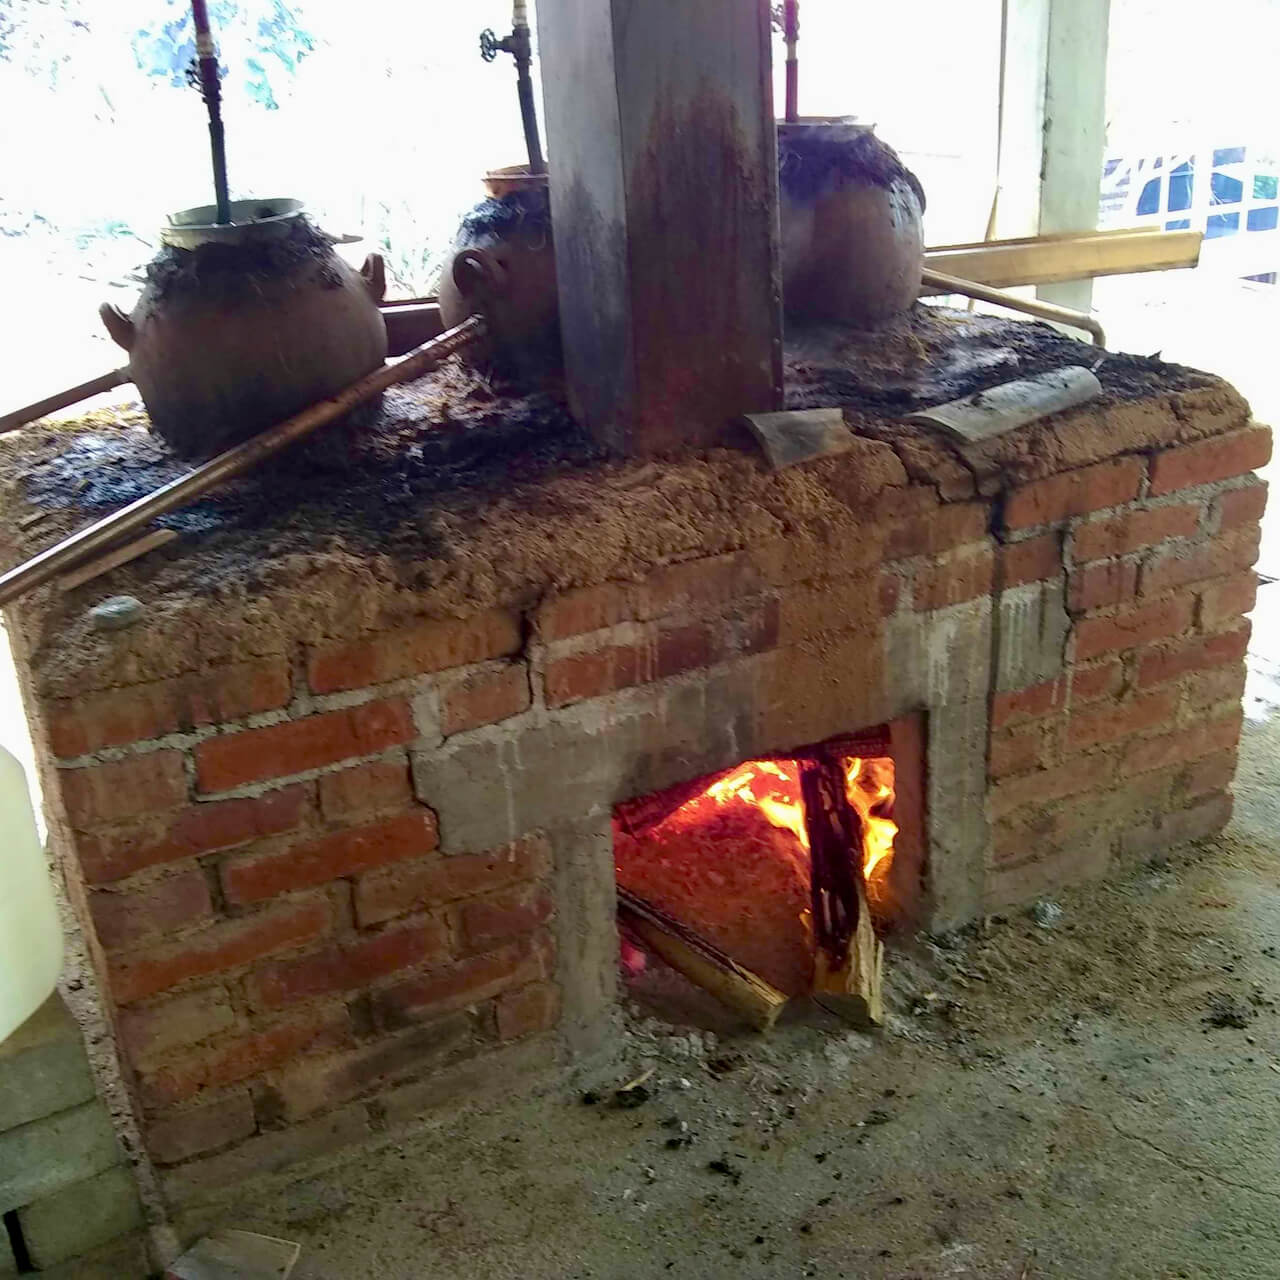 A mezcal still with one source of fire and three stills